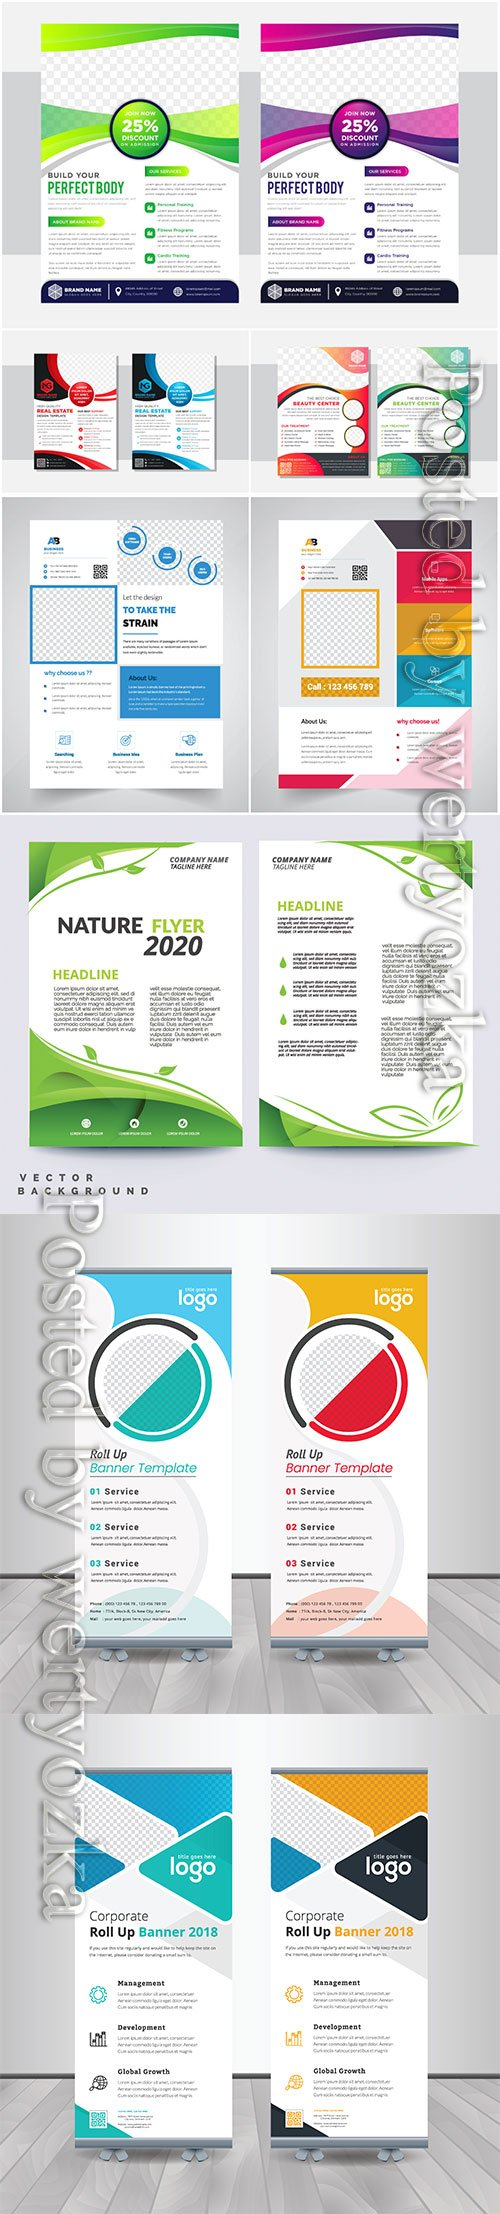 Annual report concept flyer template, roll up business